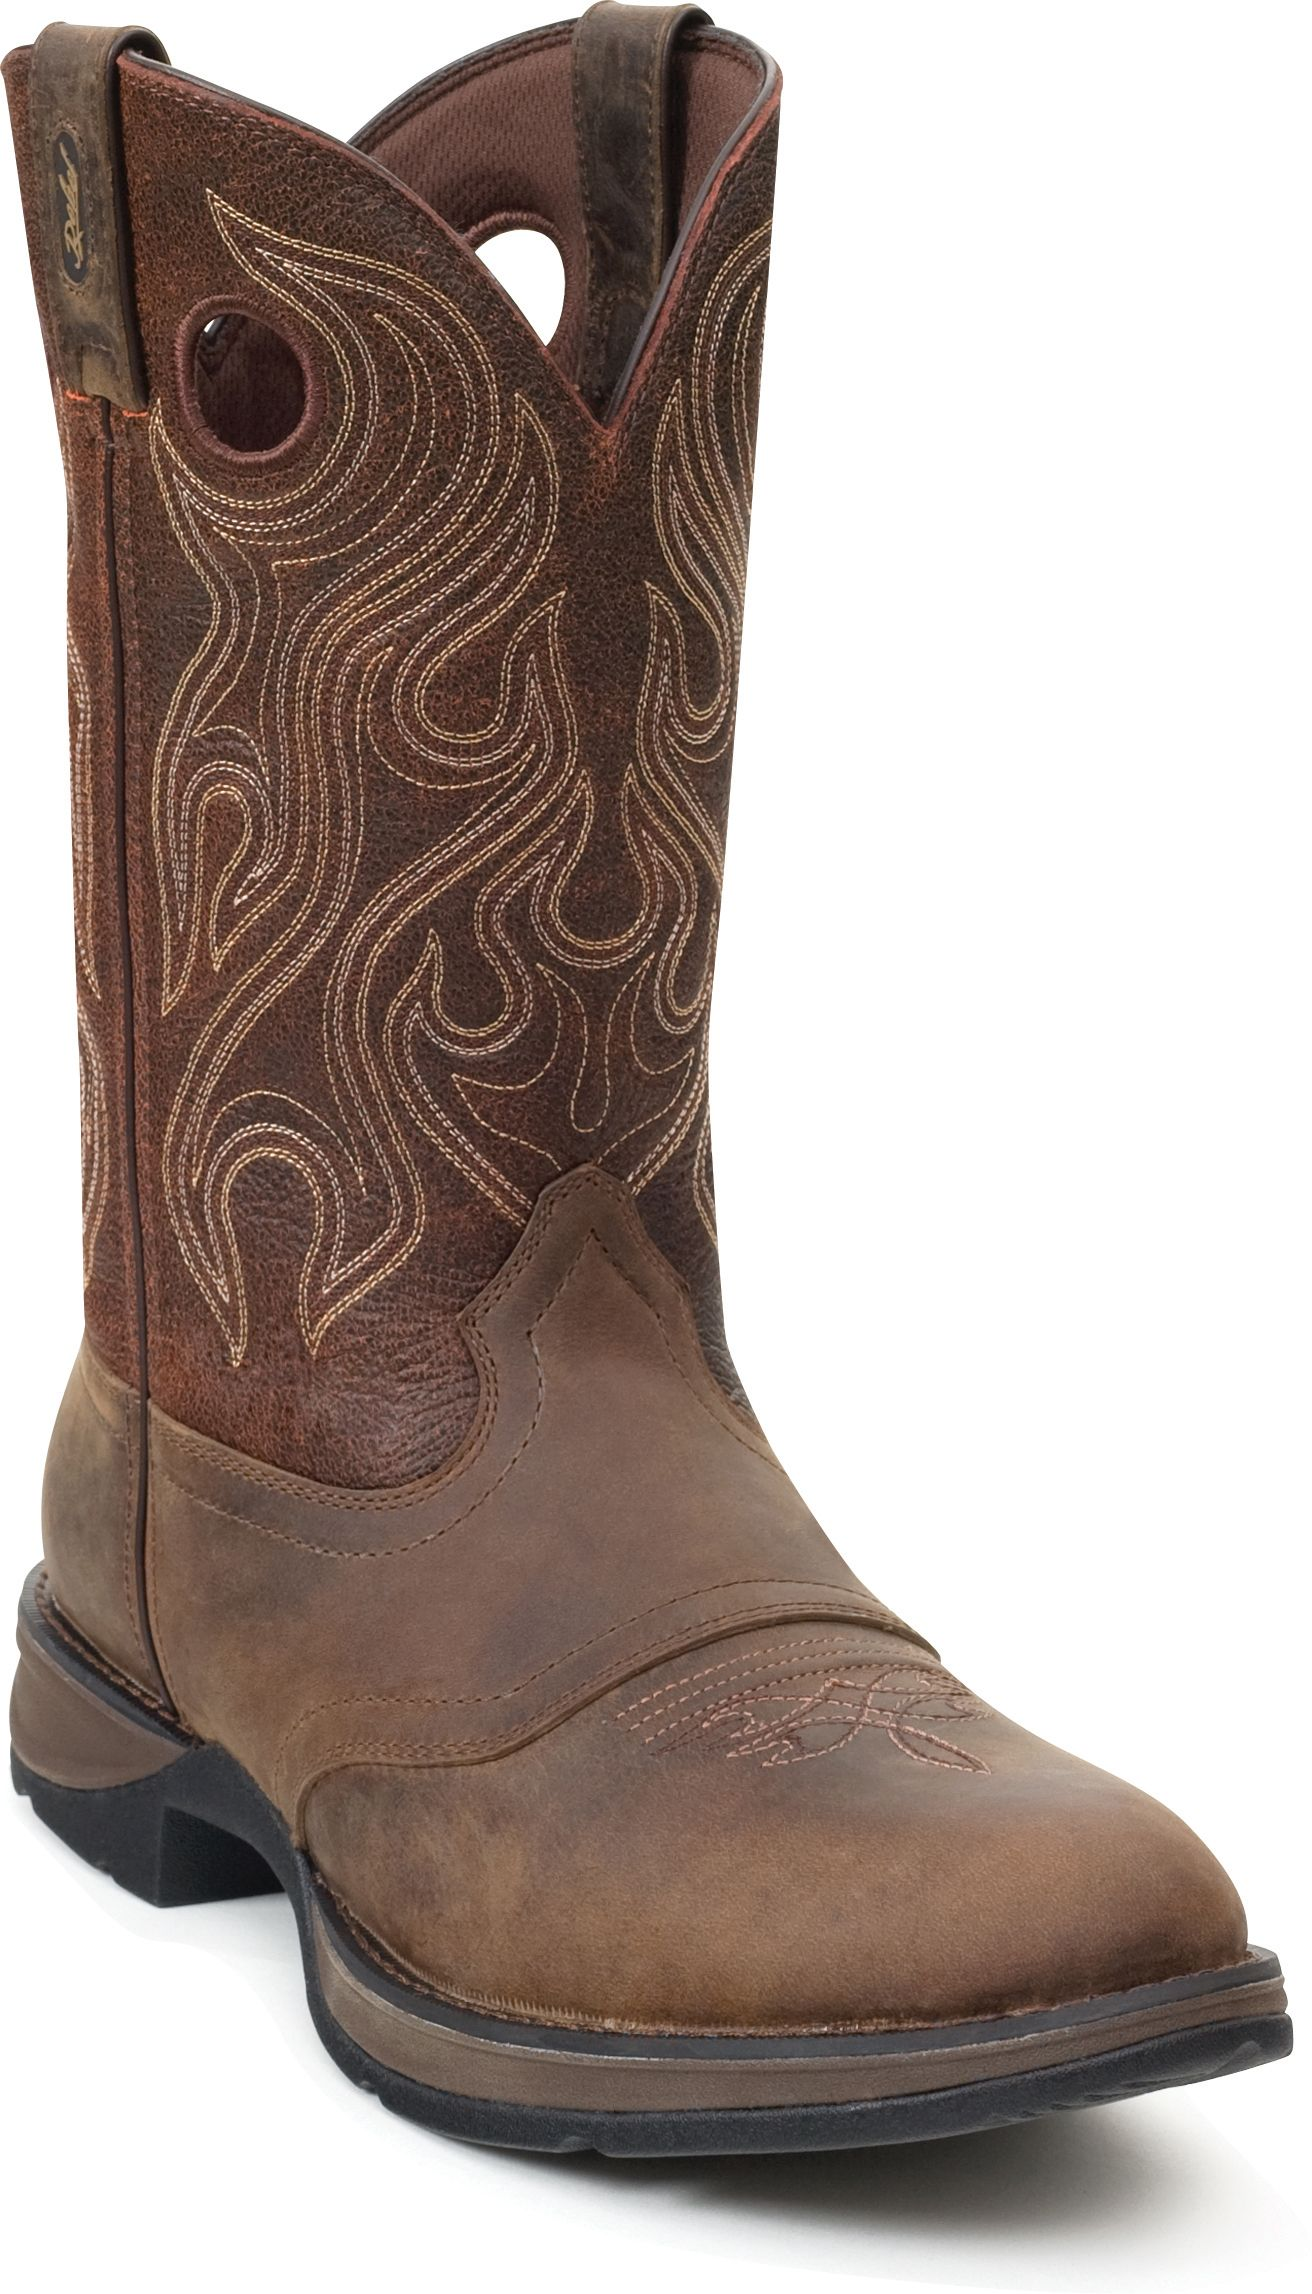 Shop Skip's in store or online for the latest men's cowboy boots ...